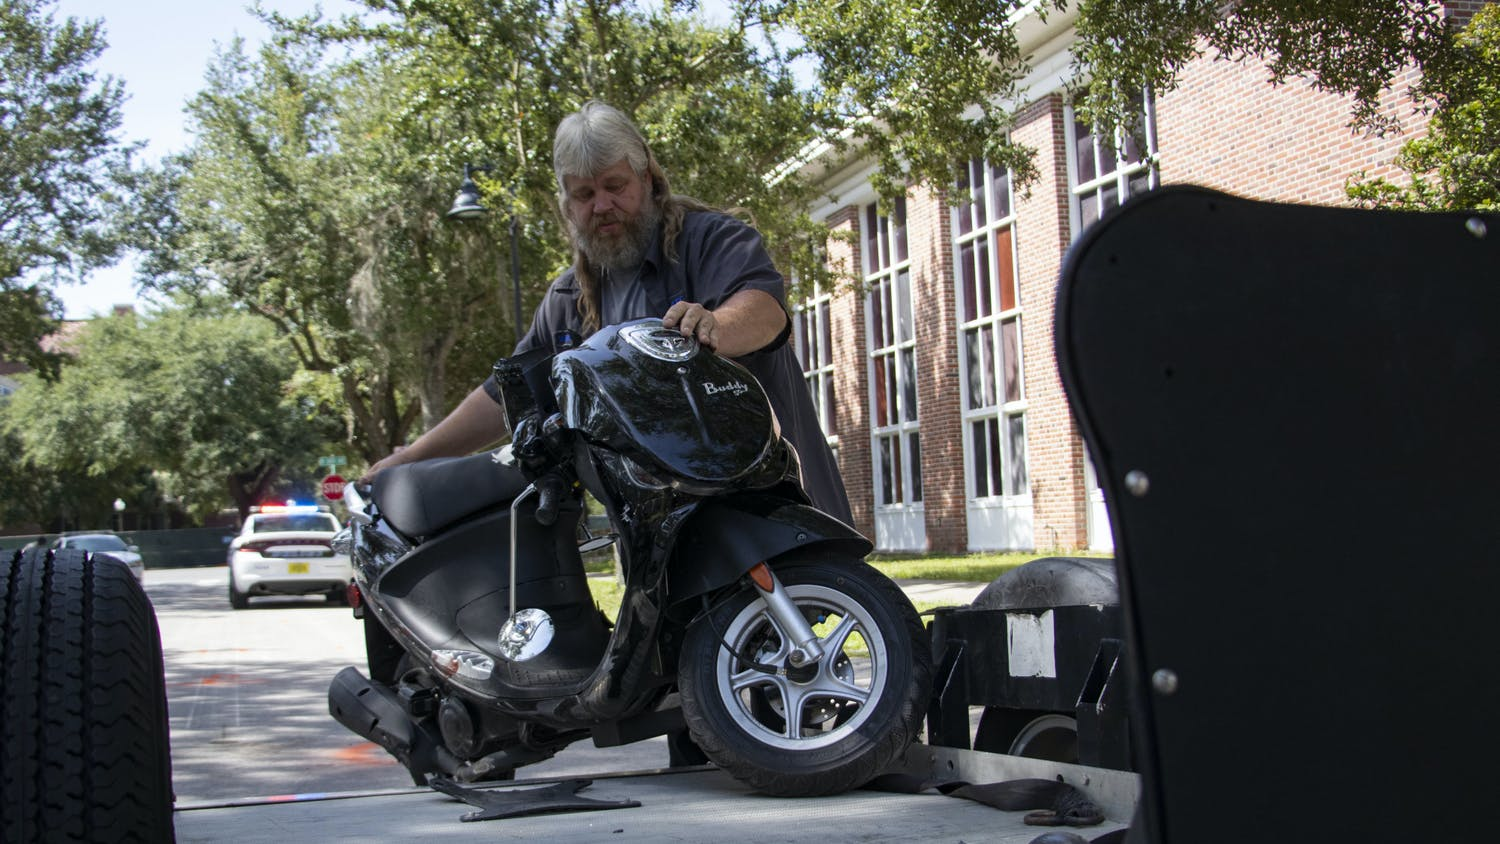 William Edwards, Elite Towing tow truck driver, puts the scooter involved in the crash on Northwest 16th Street on his trailer on Monday, Aug. 30, 2021.